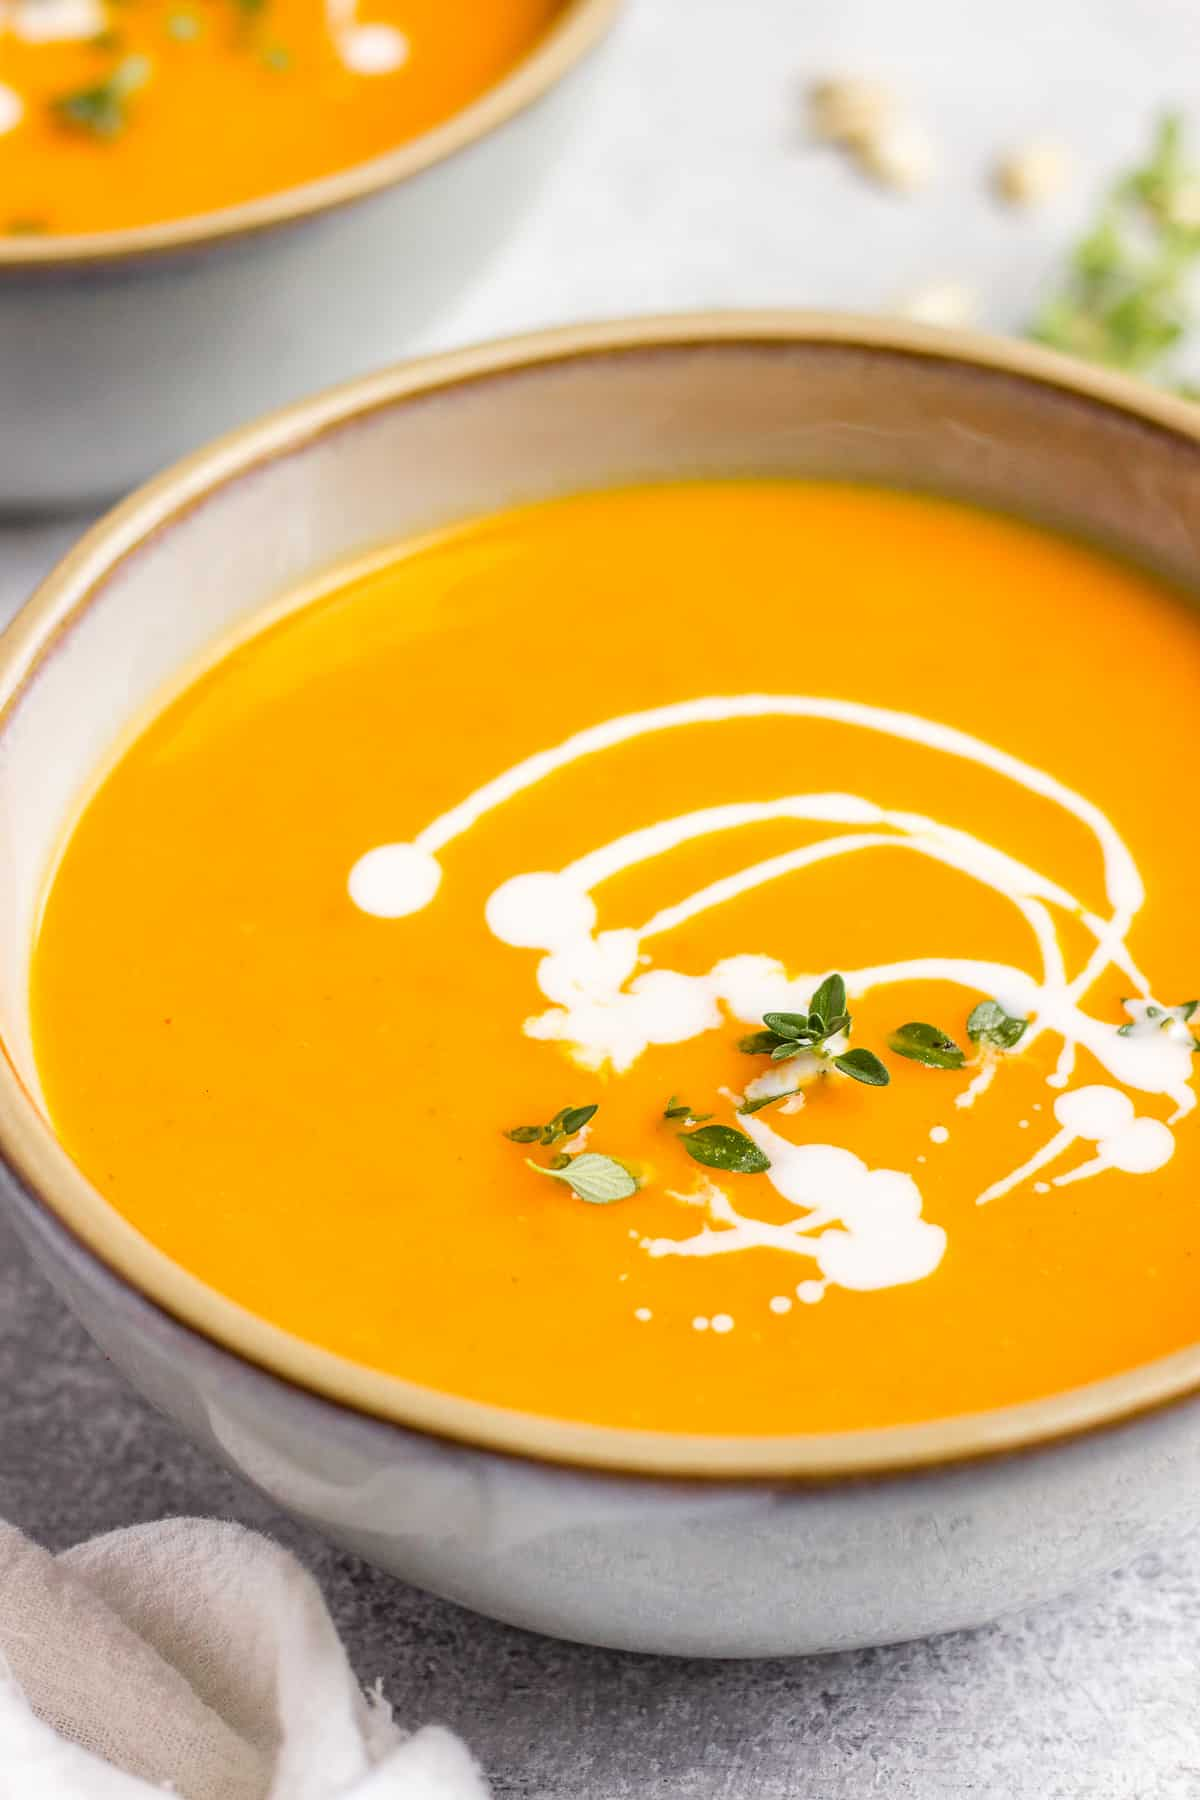 Creamy butternut squash soup with coconut milk in a bowl garnished with thyme